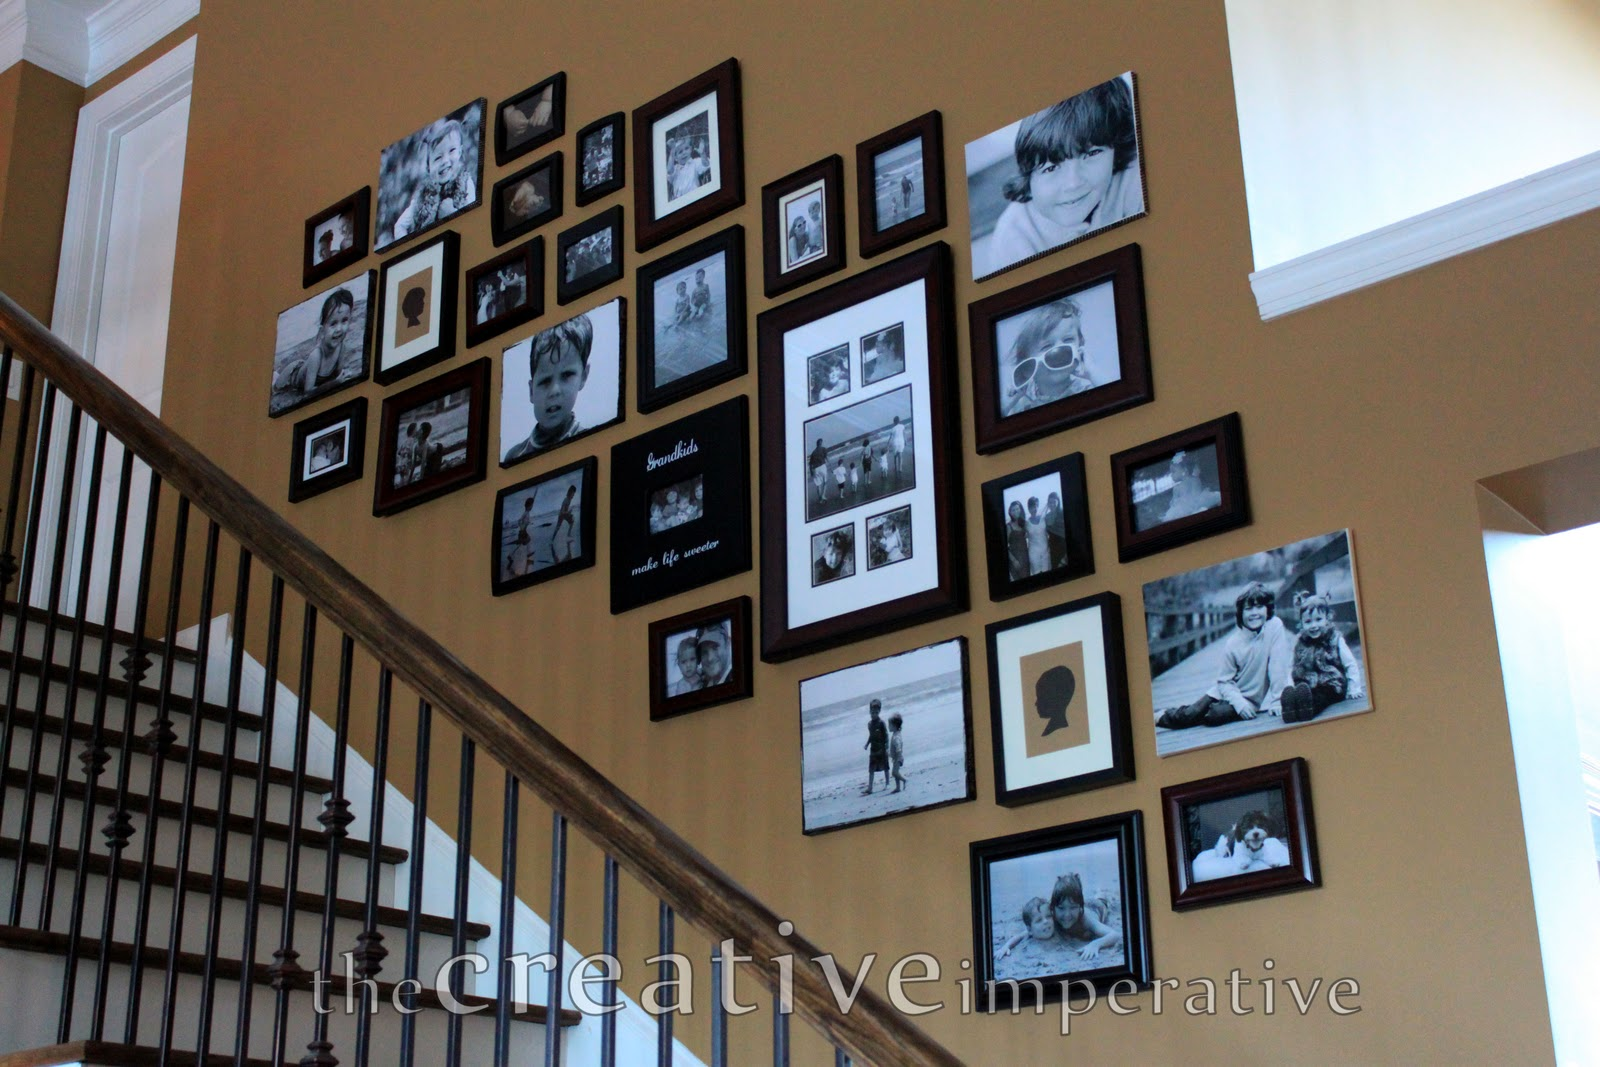 The Creative Imperative Stairway Gallery Wall